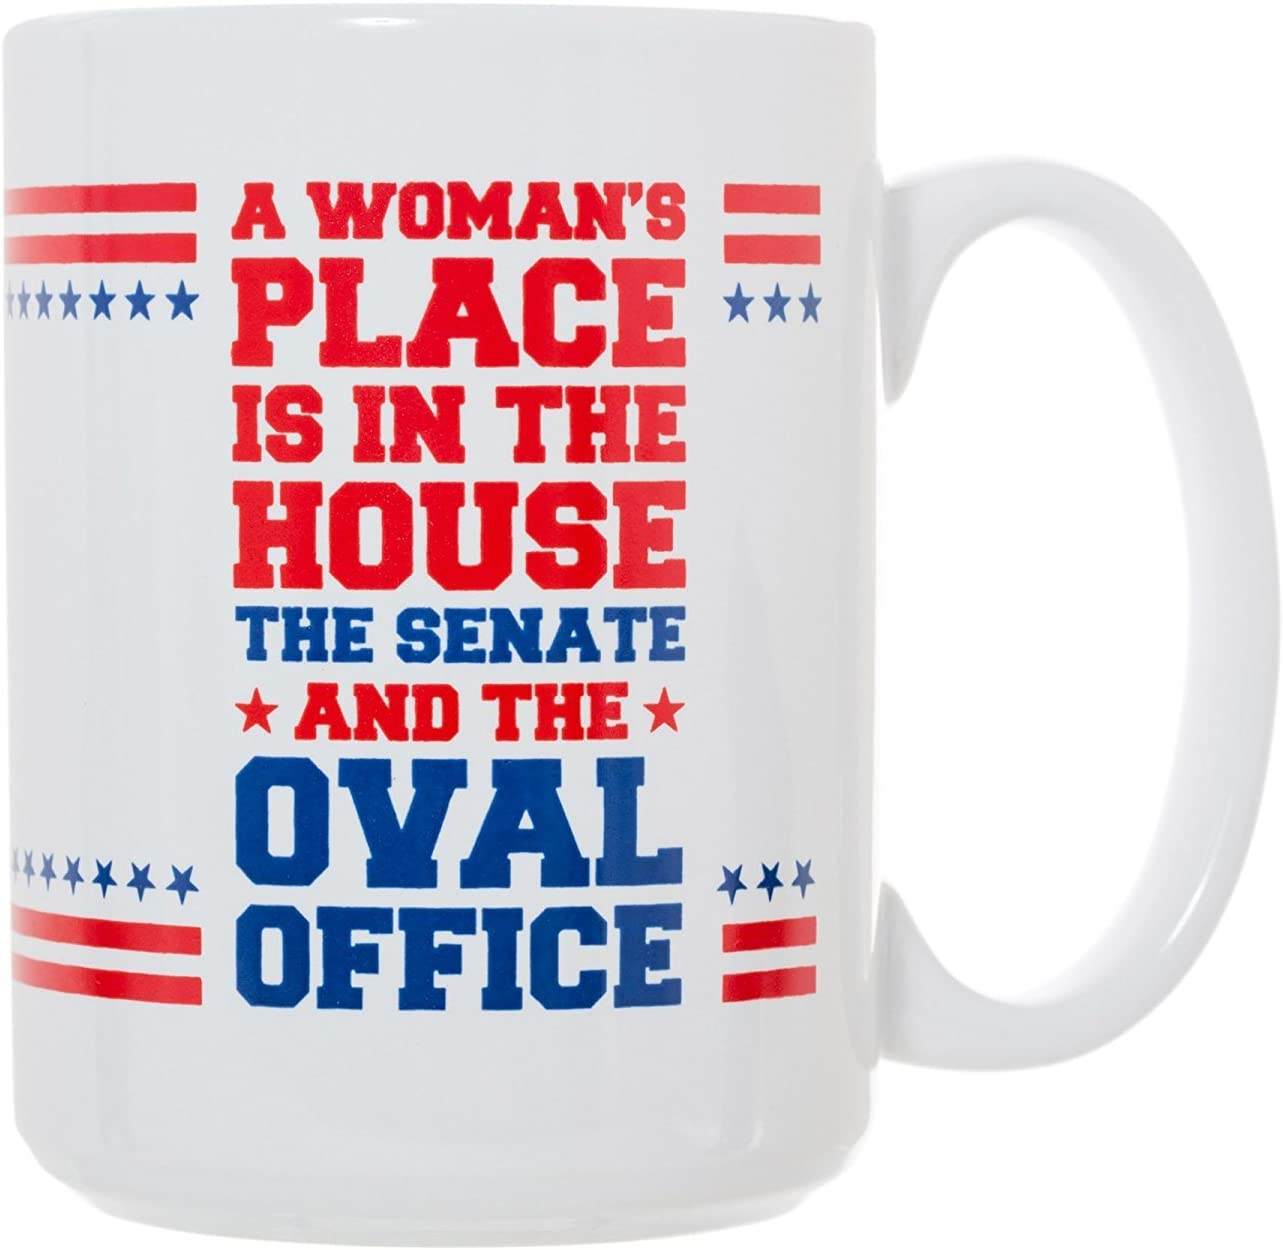 A Woman's Place Is In the House, Senate, AND the Oval Office - 15 oz Deluxe Large Double-Sided Election Mug